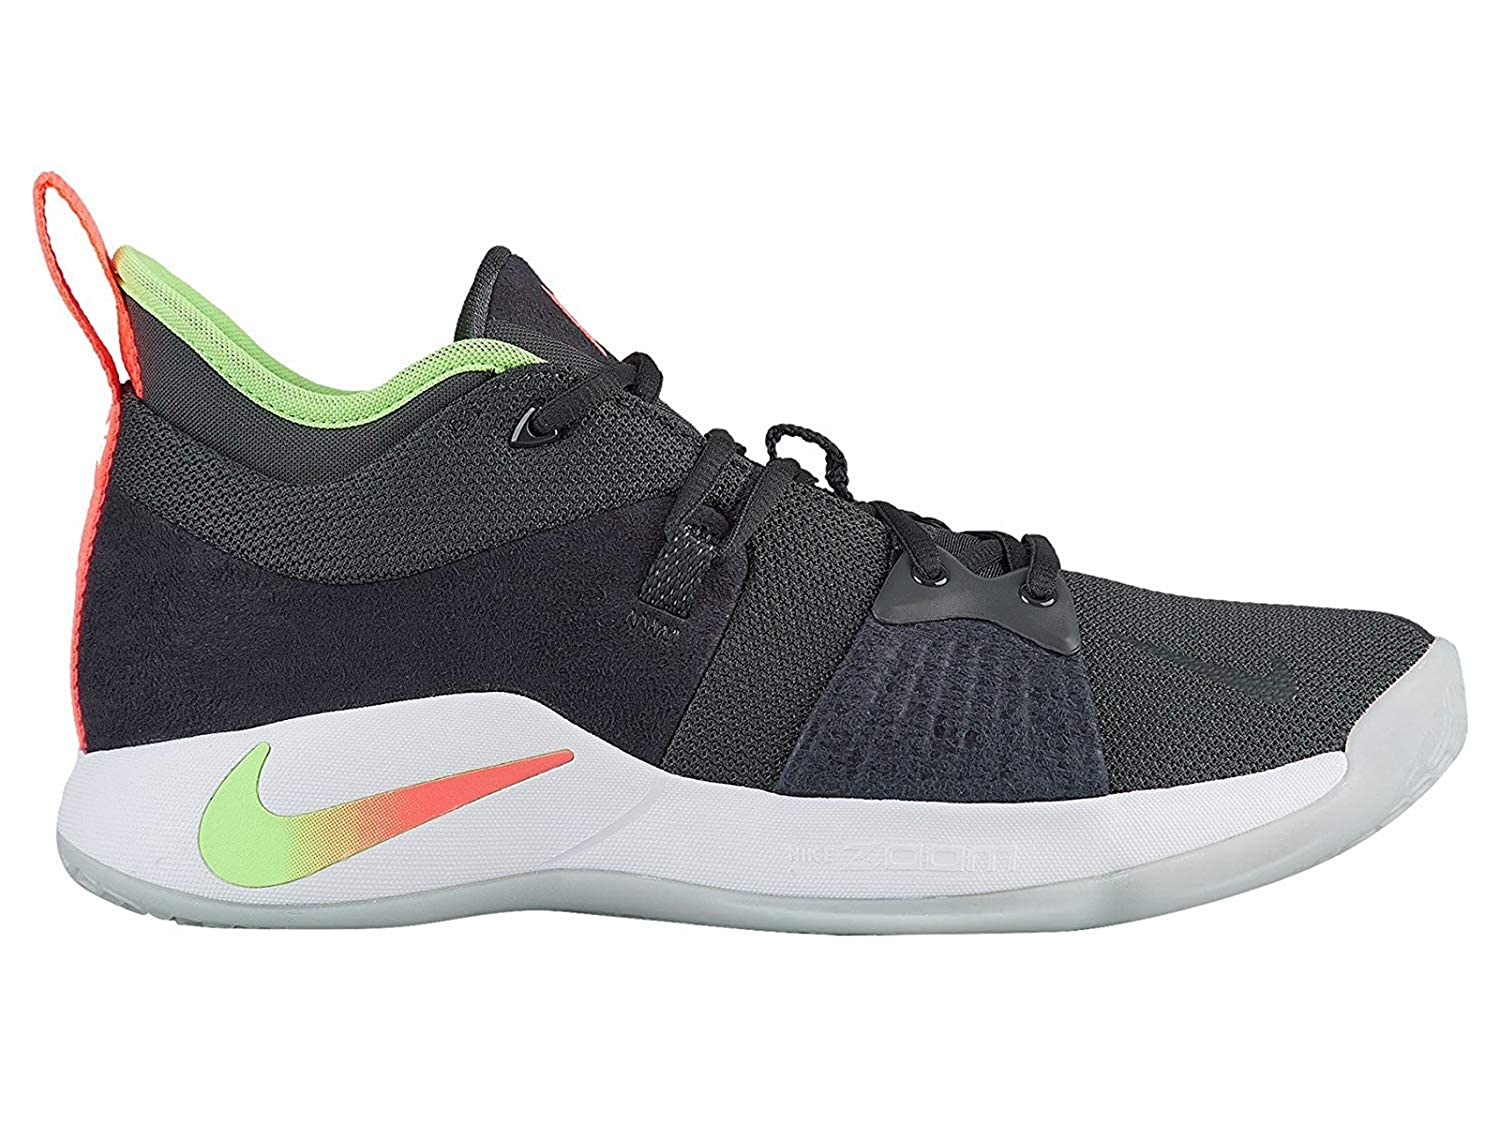 detailed look 7c0c3 f3584 Nike Men's PG 2 Basketball Shoes (9.5, Anthracite/Hot Punch)